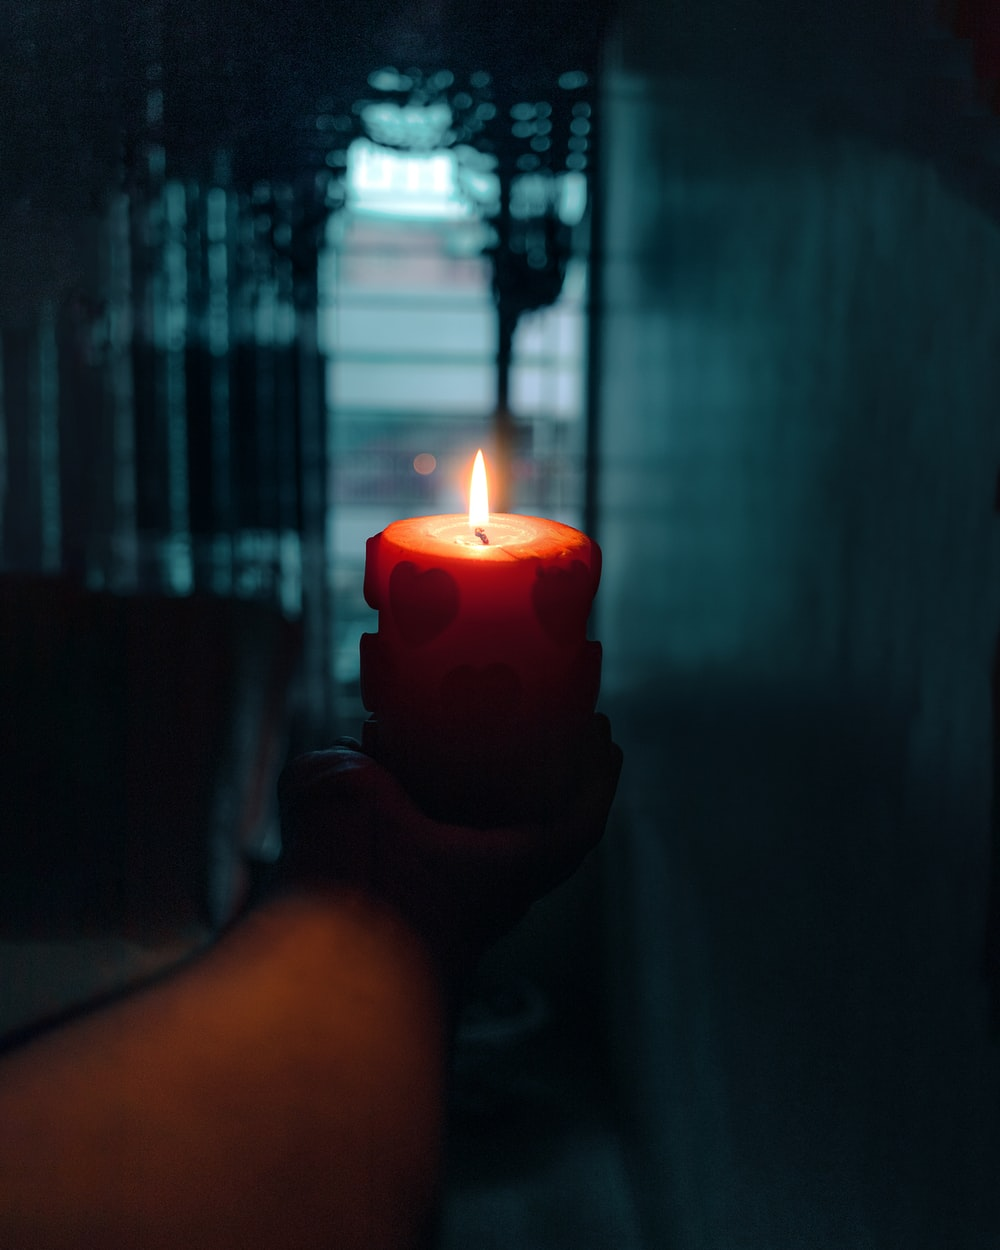 person holding red pillar candle